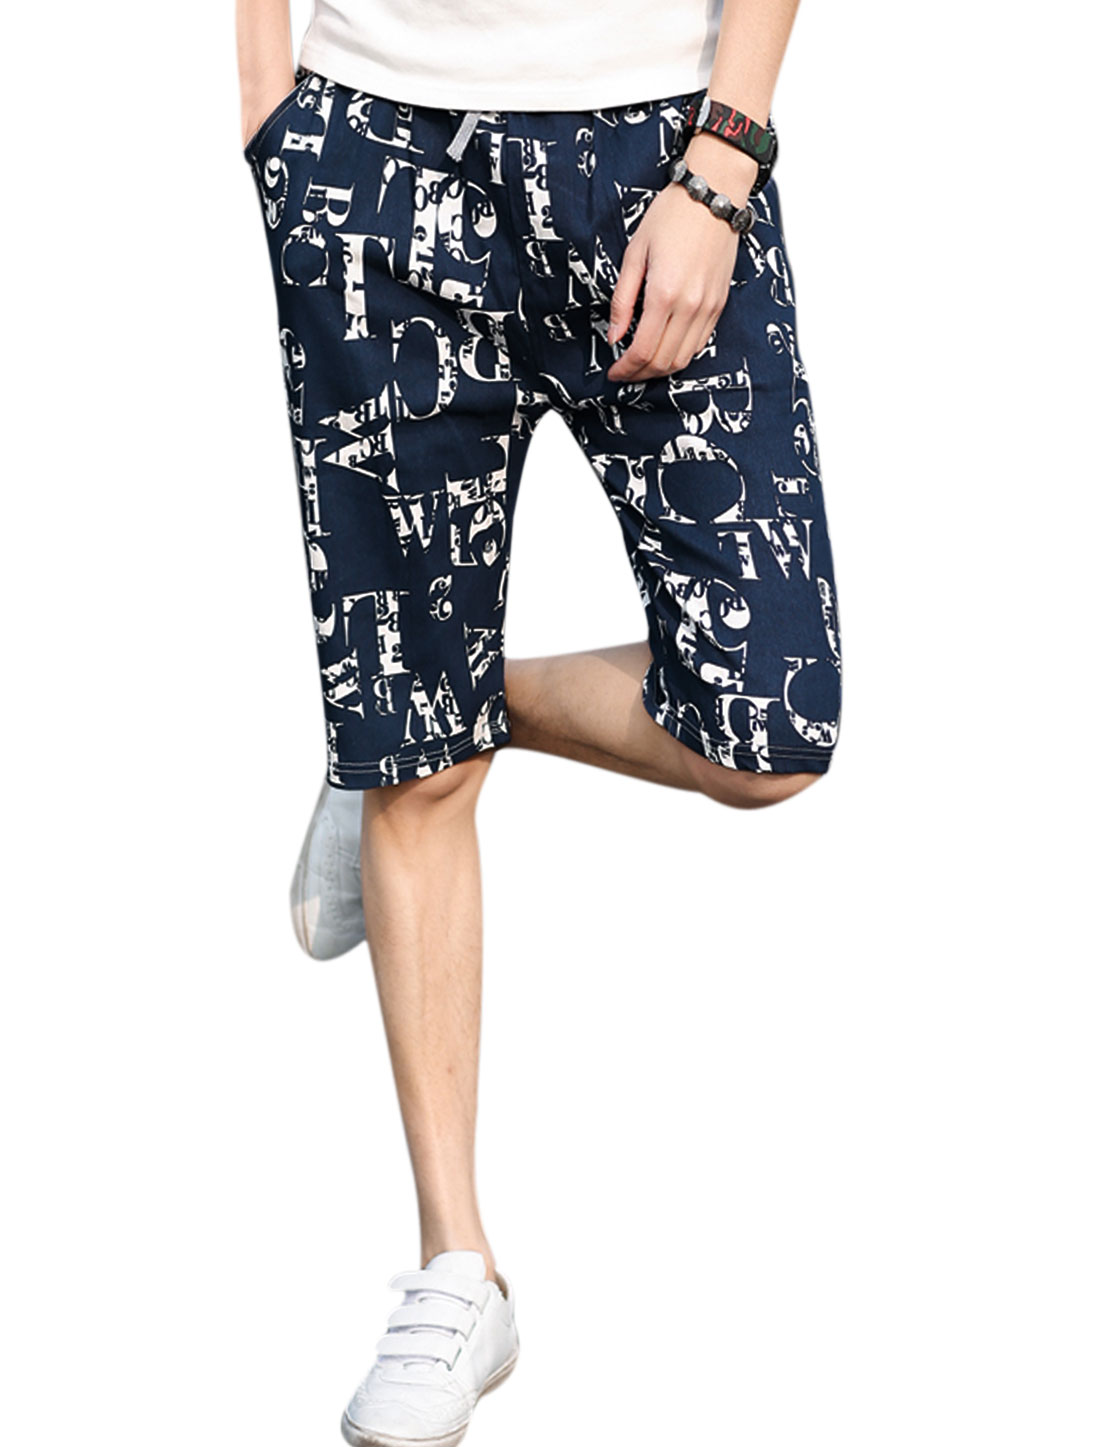 Man Numbers Letters Prints Elastic Waist Band Casual Beach Shorts Navy Blue W32